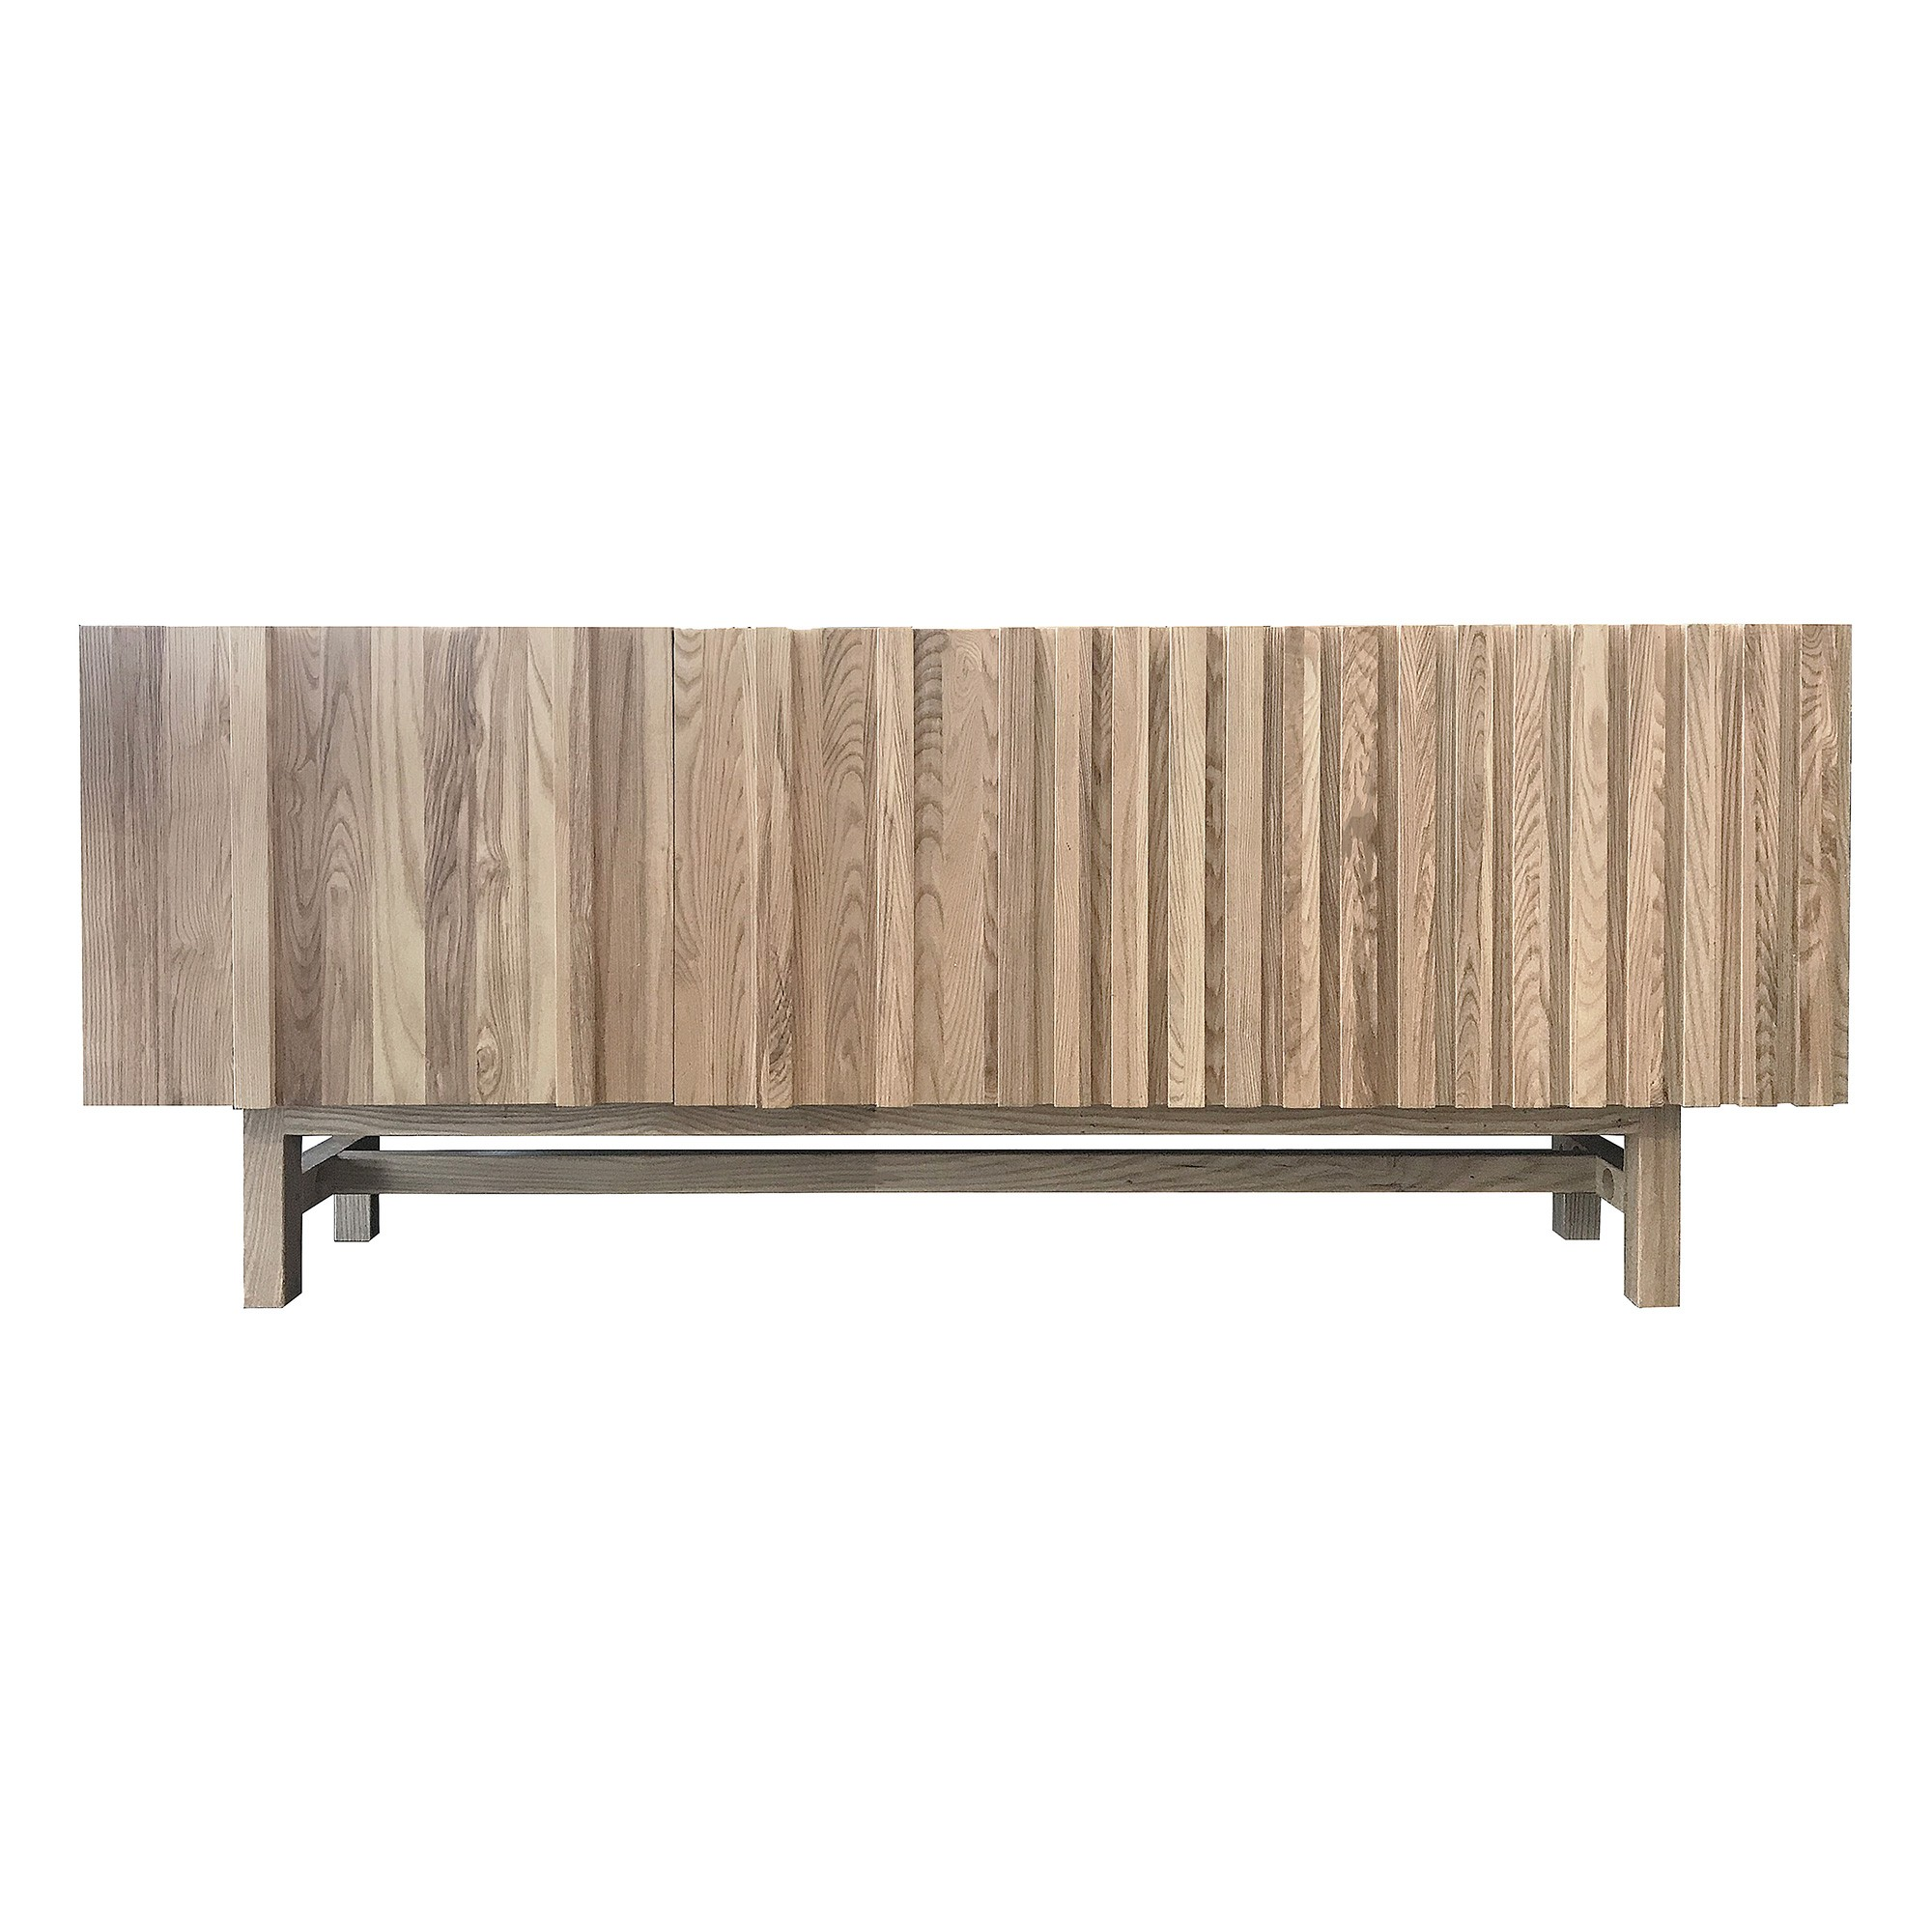 Doby Ash Timber Sideboard, 195cm, Natural